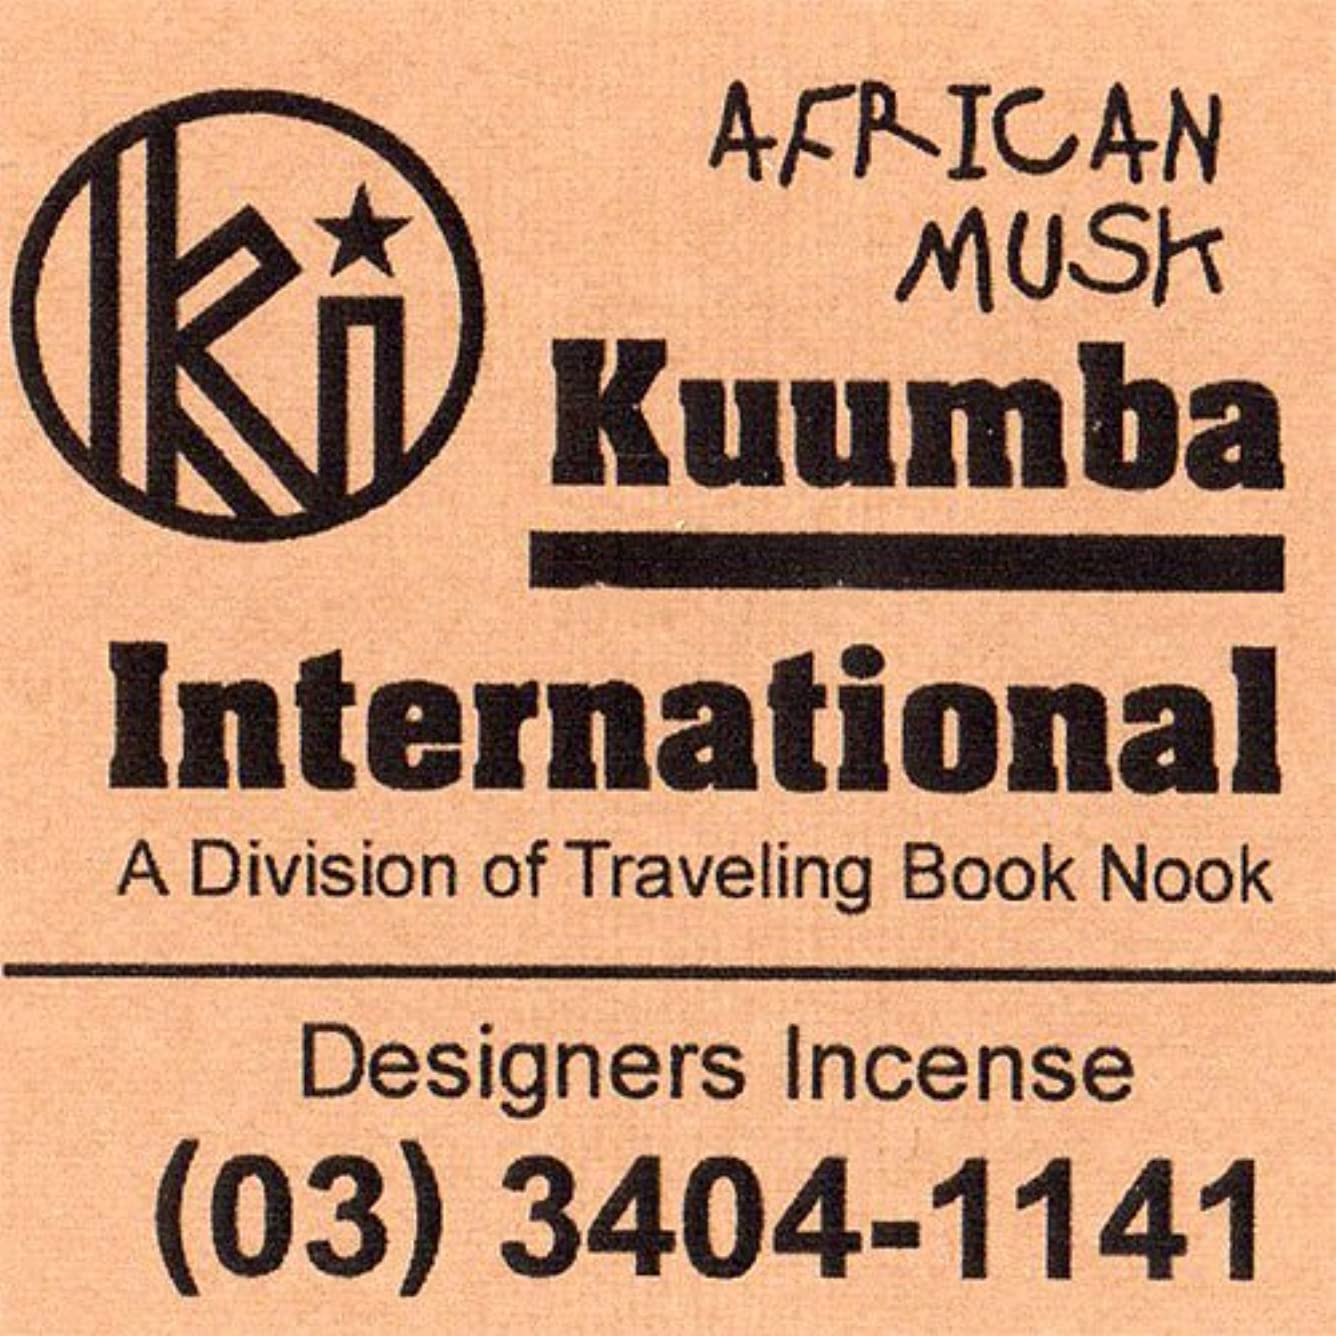 秋立方体祭りKUUMBA / クンバ『incense』(AFRICAN MUSK) (Regular size)